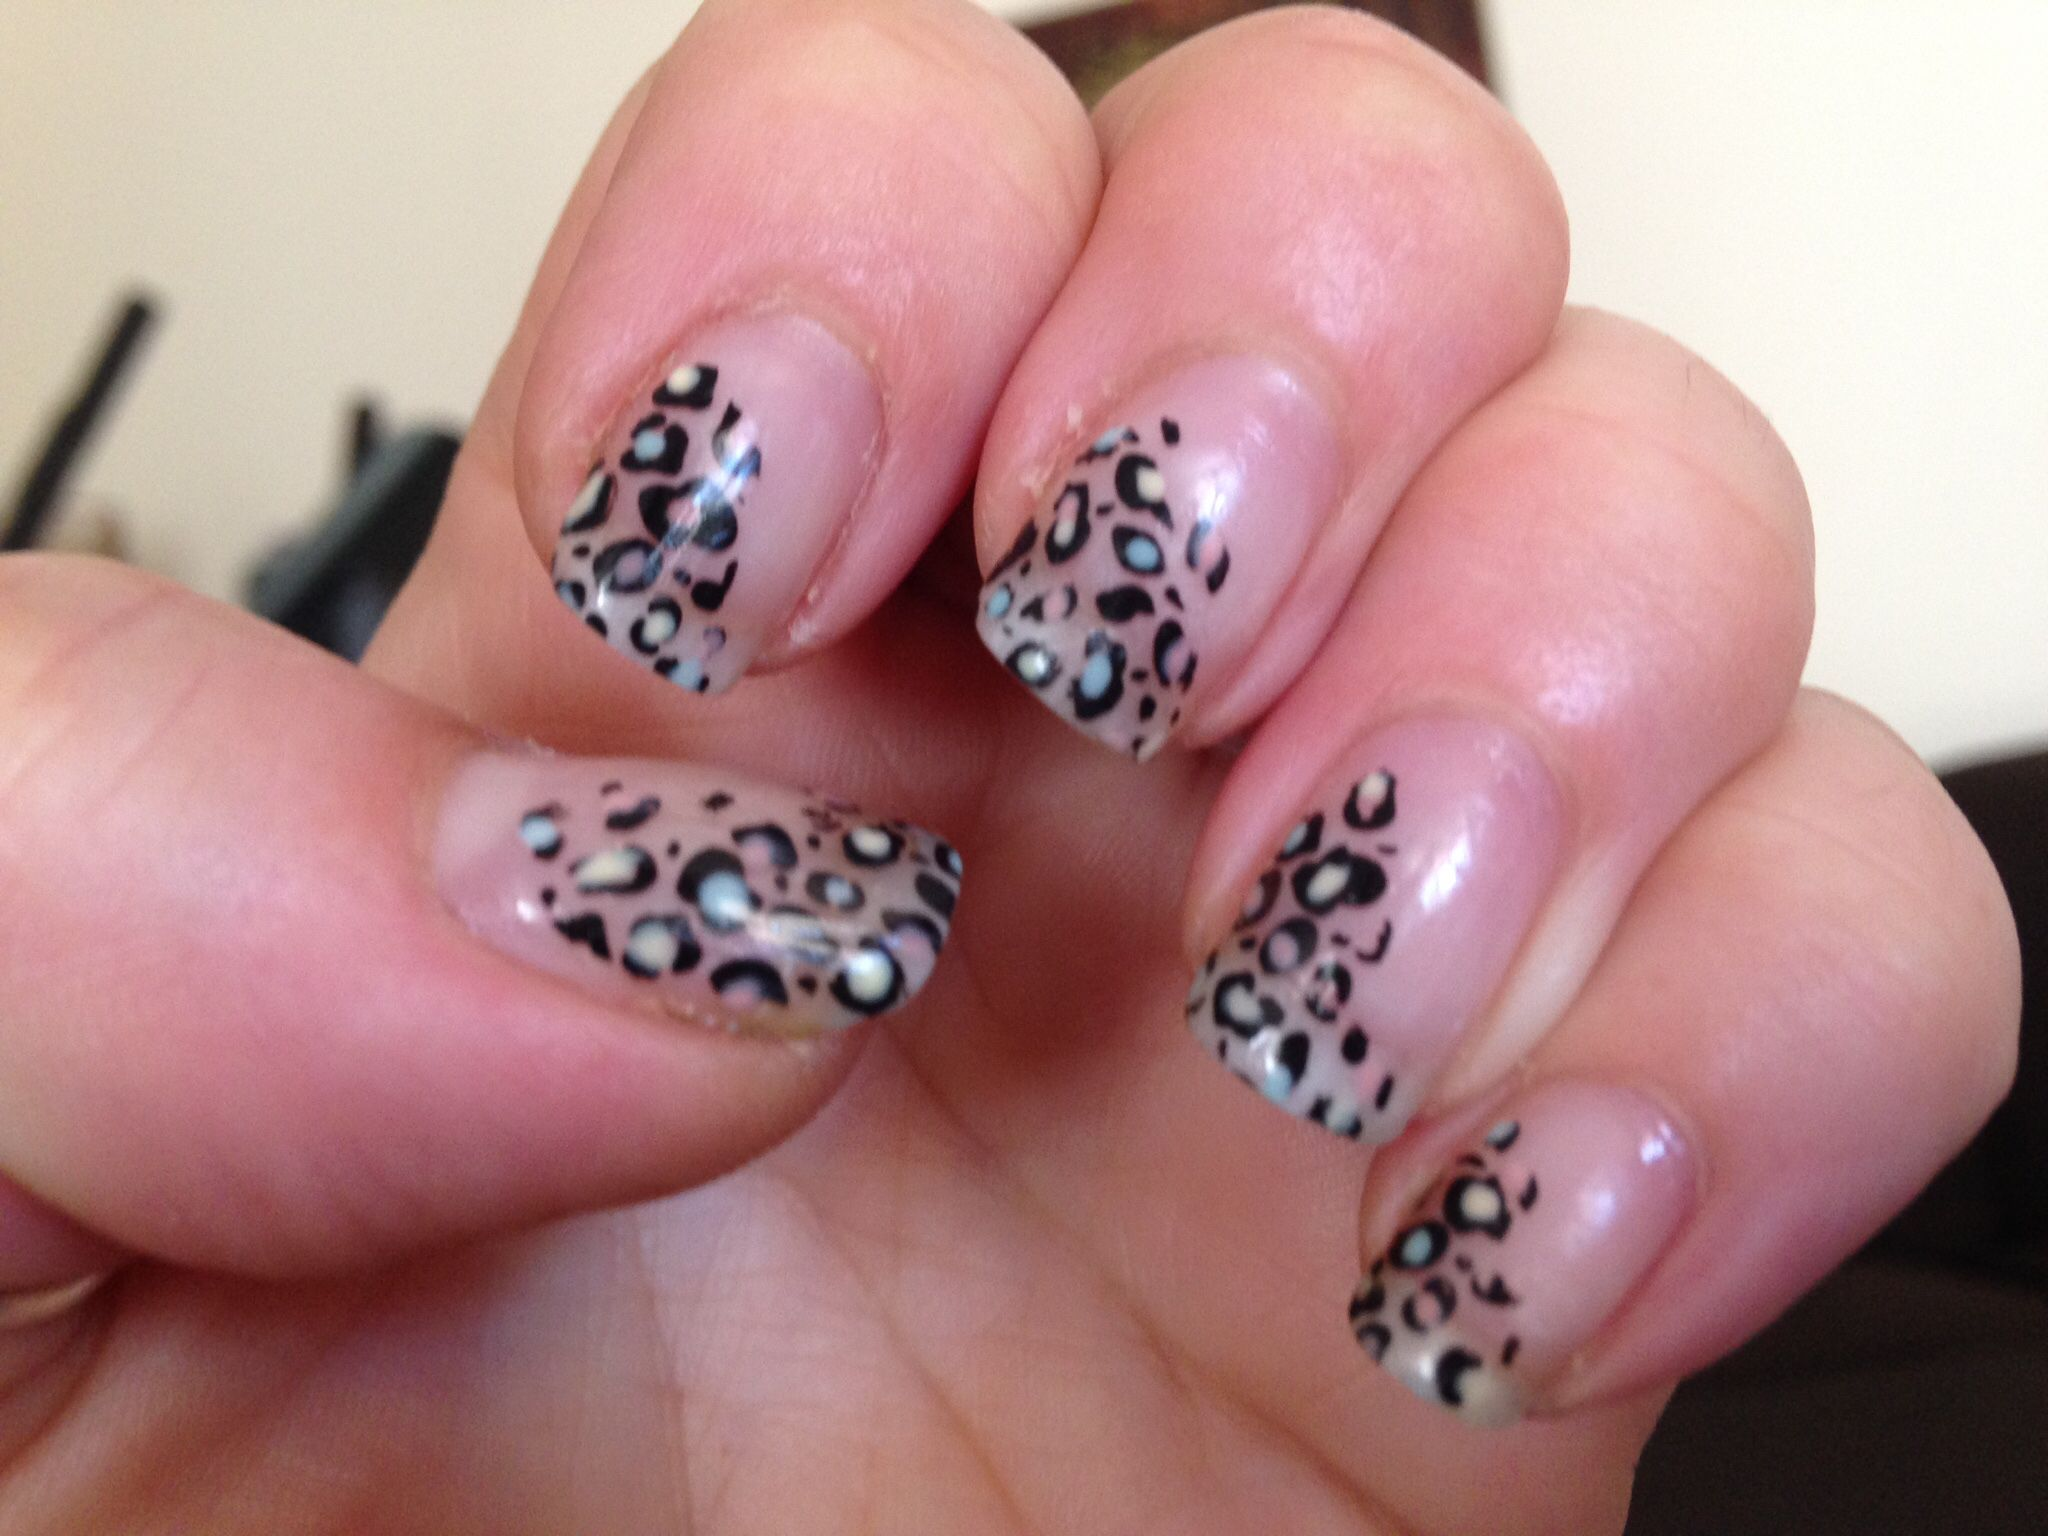 The art of nails cairns nails pinterest art nails and the arts the art of nails cairns prinsesfo Image collections